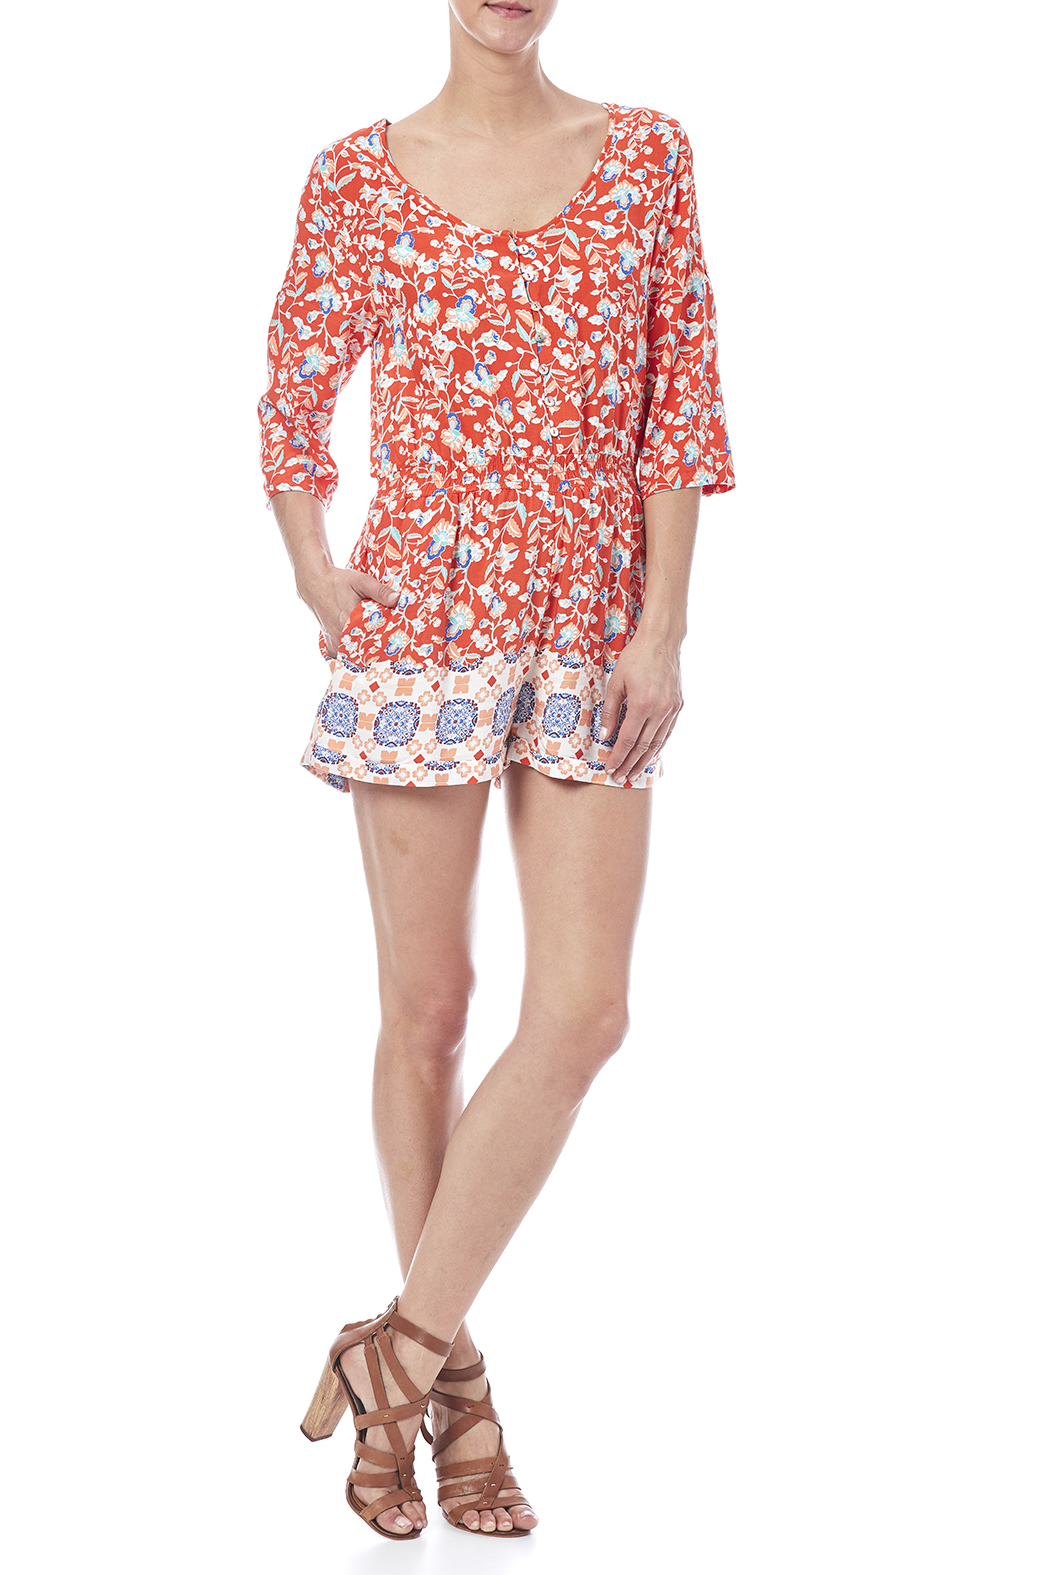 MinkPink Neighborhood Floral Romper - Front Full Image